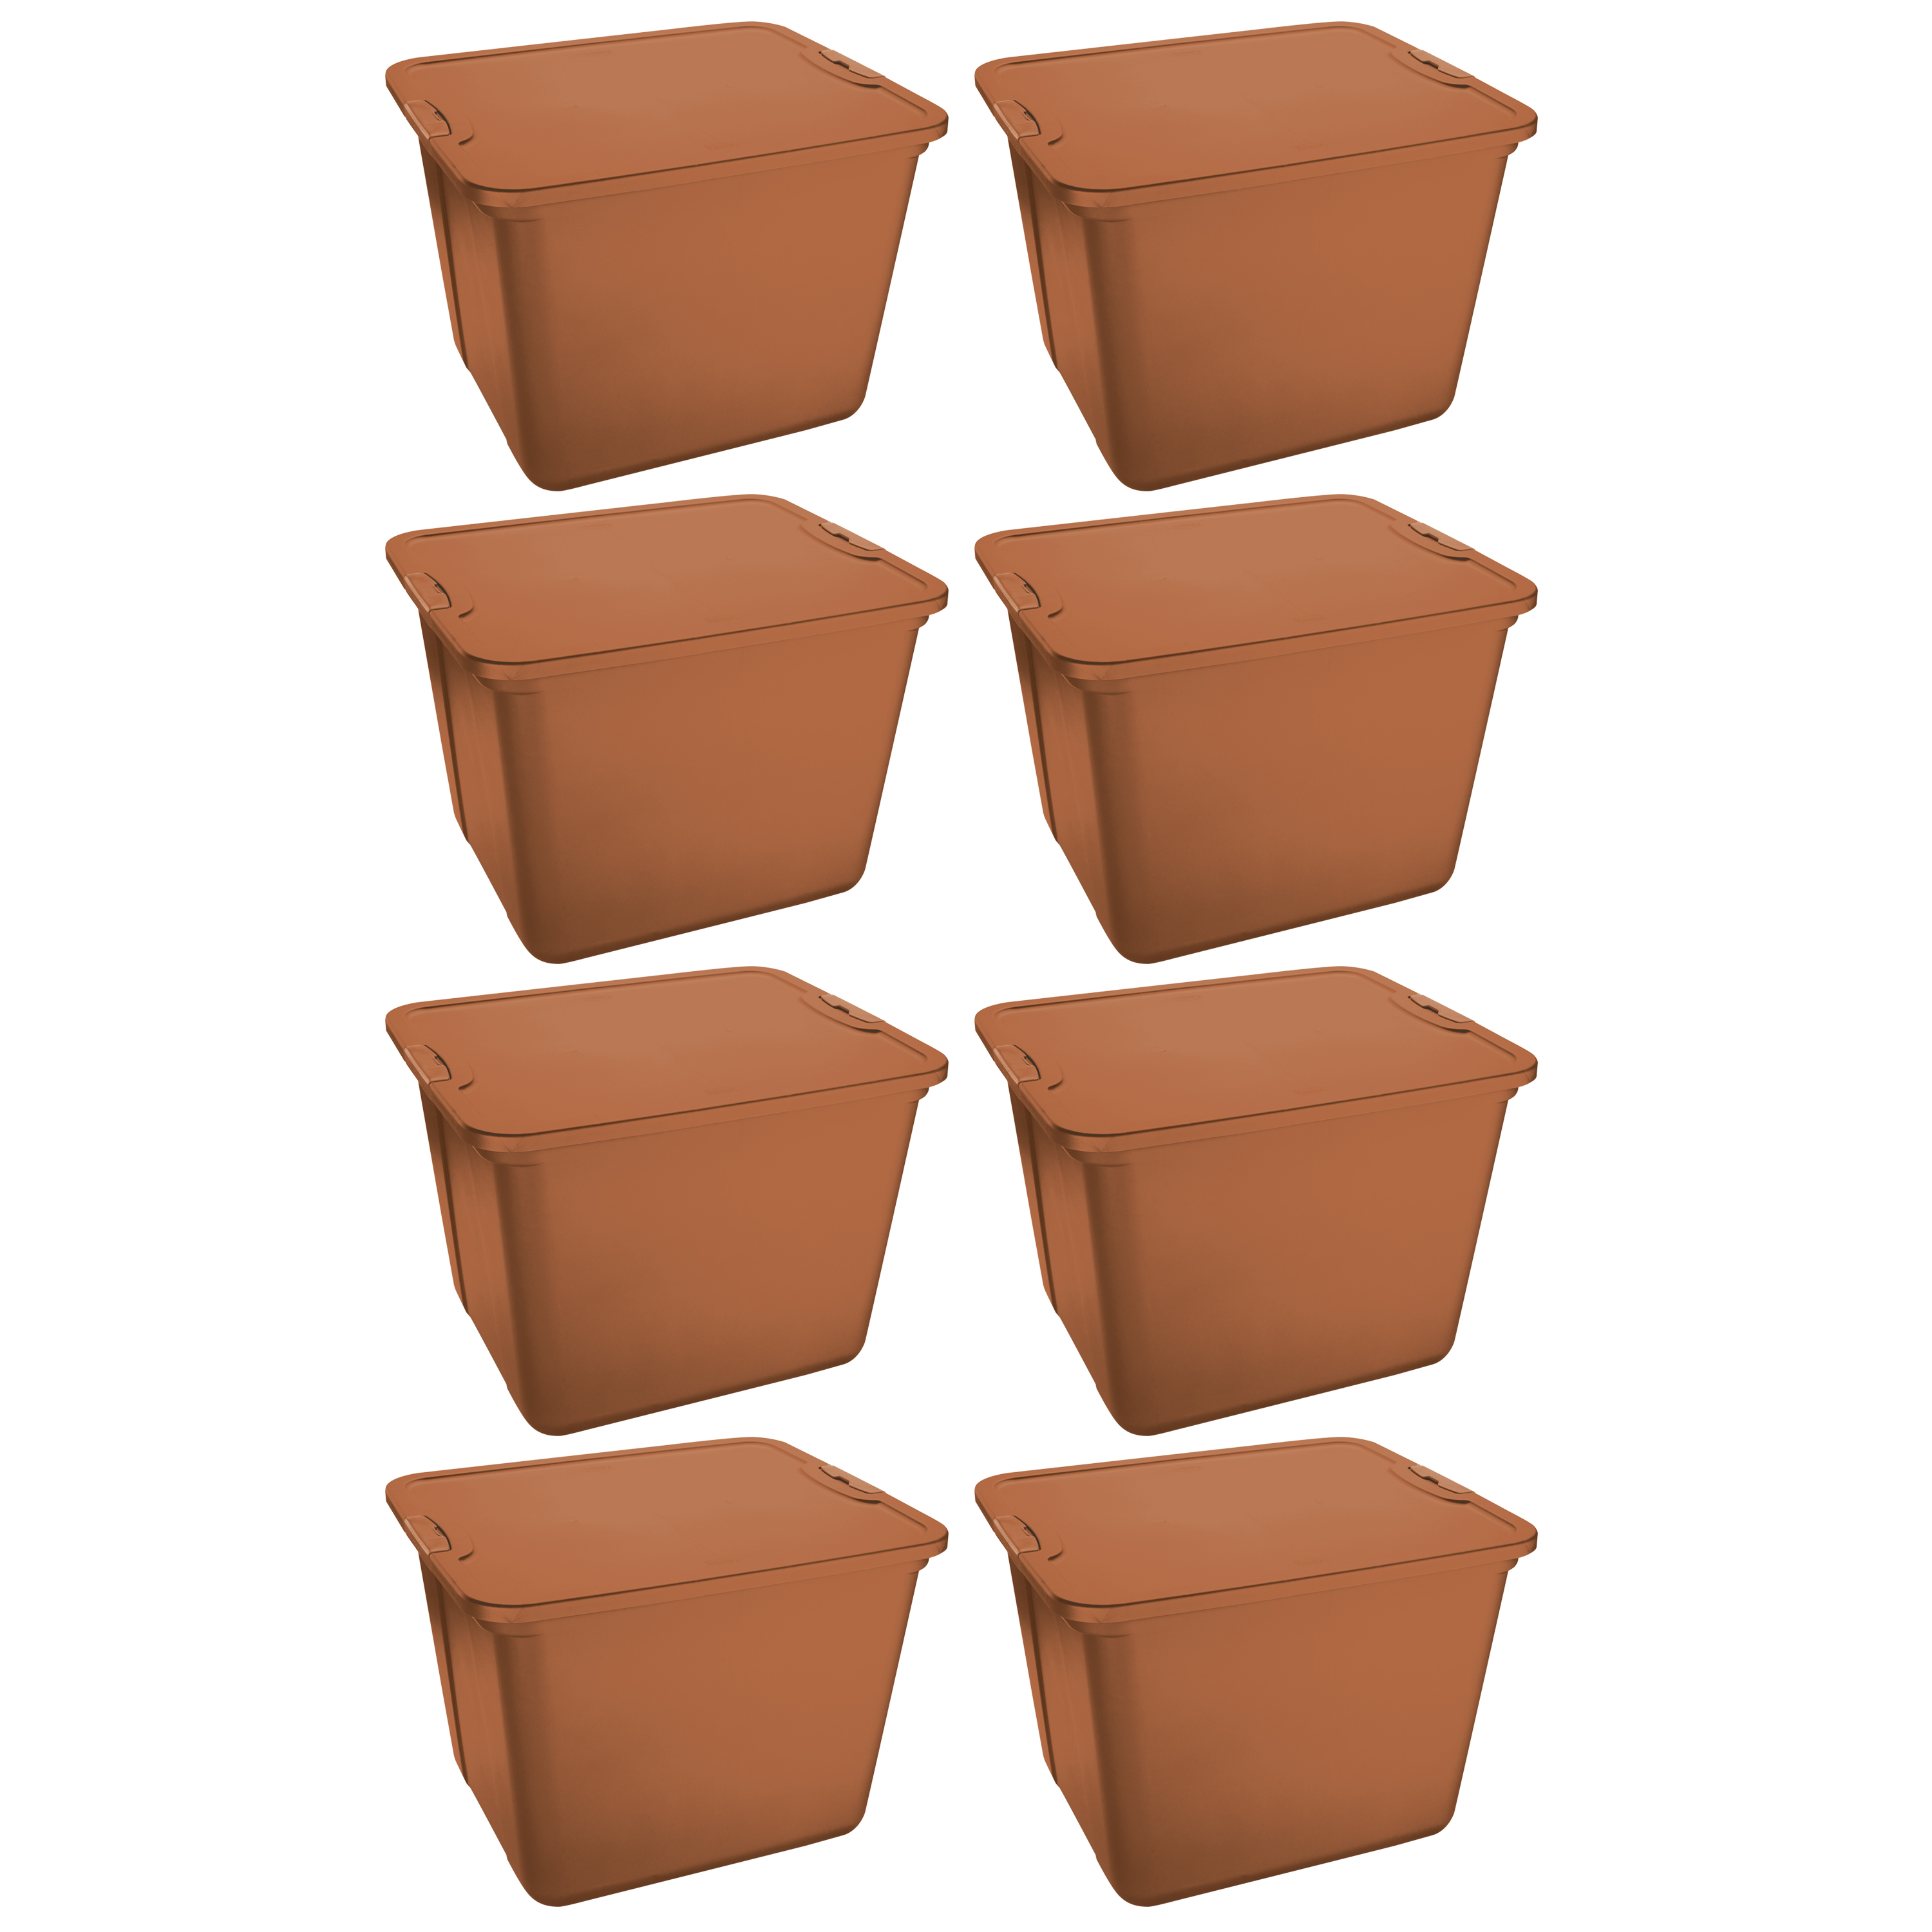 Mainstays 20 gal Latching Handle Storage Totes, Set of 8, Multiple Colors Available